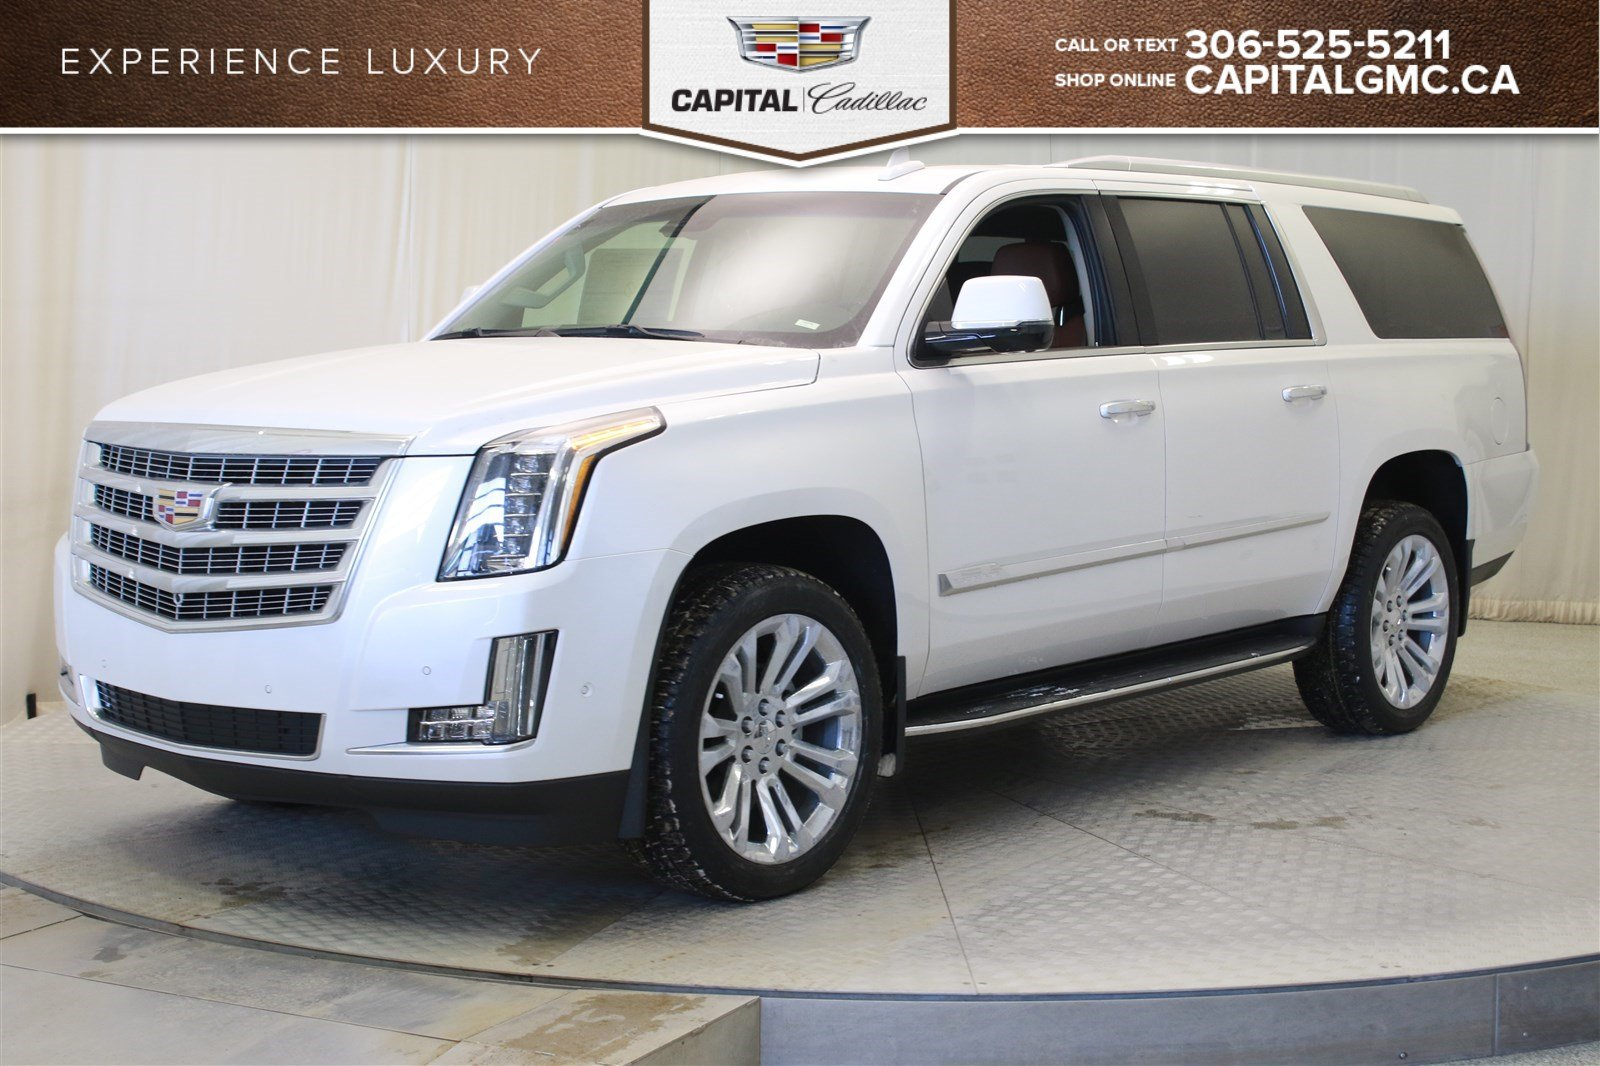 cadillac escalade suv lineup masthead vehicles suvs l crossovers